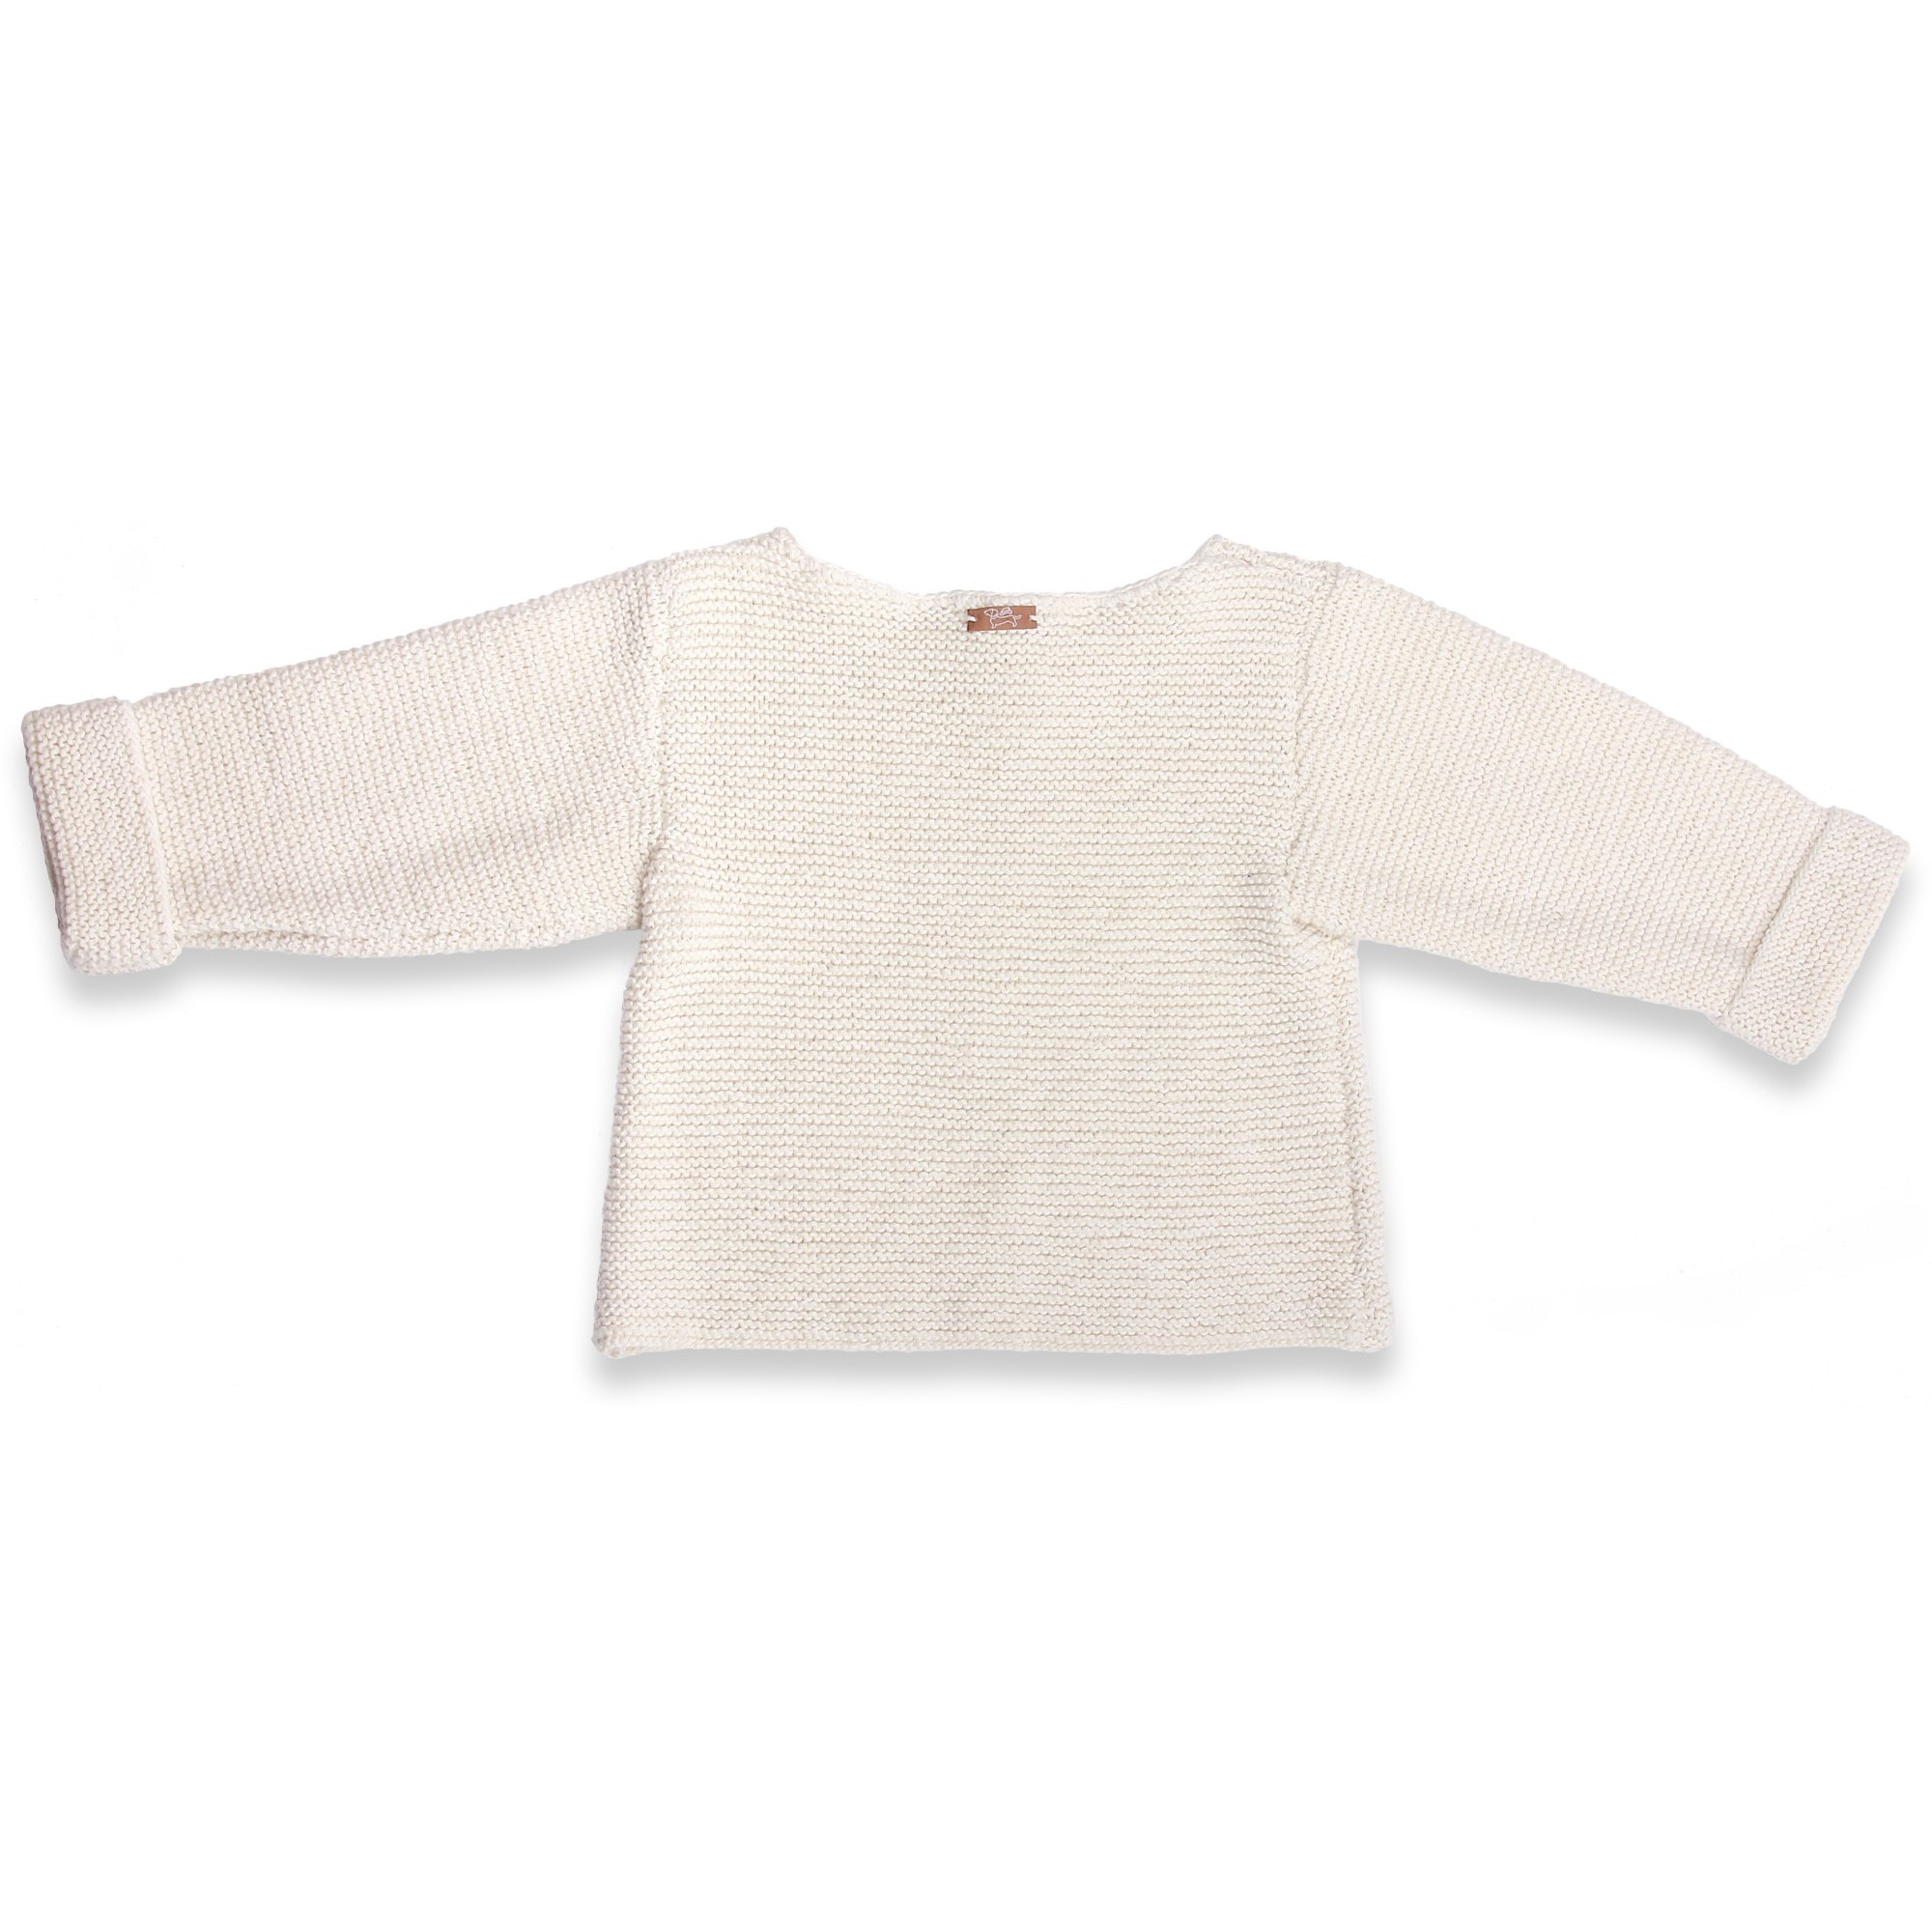 Natural white baby sweater in moss stitch made from cotton and cachemire- back